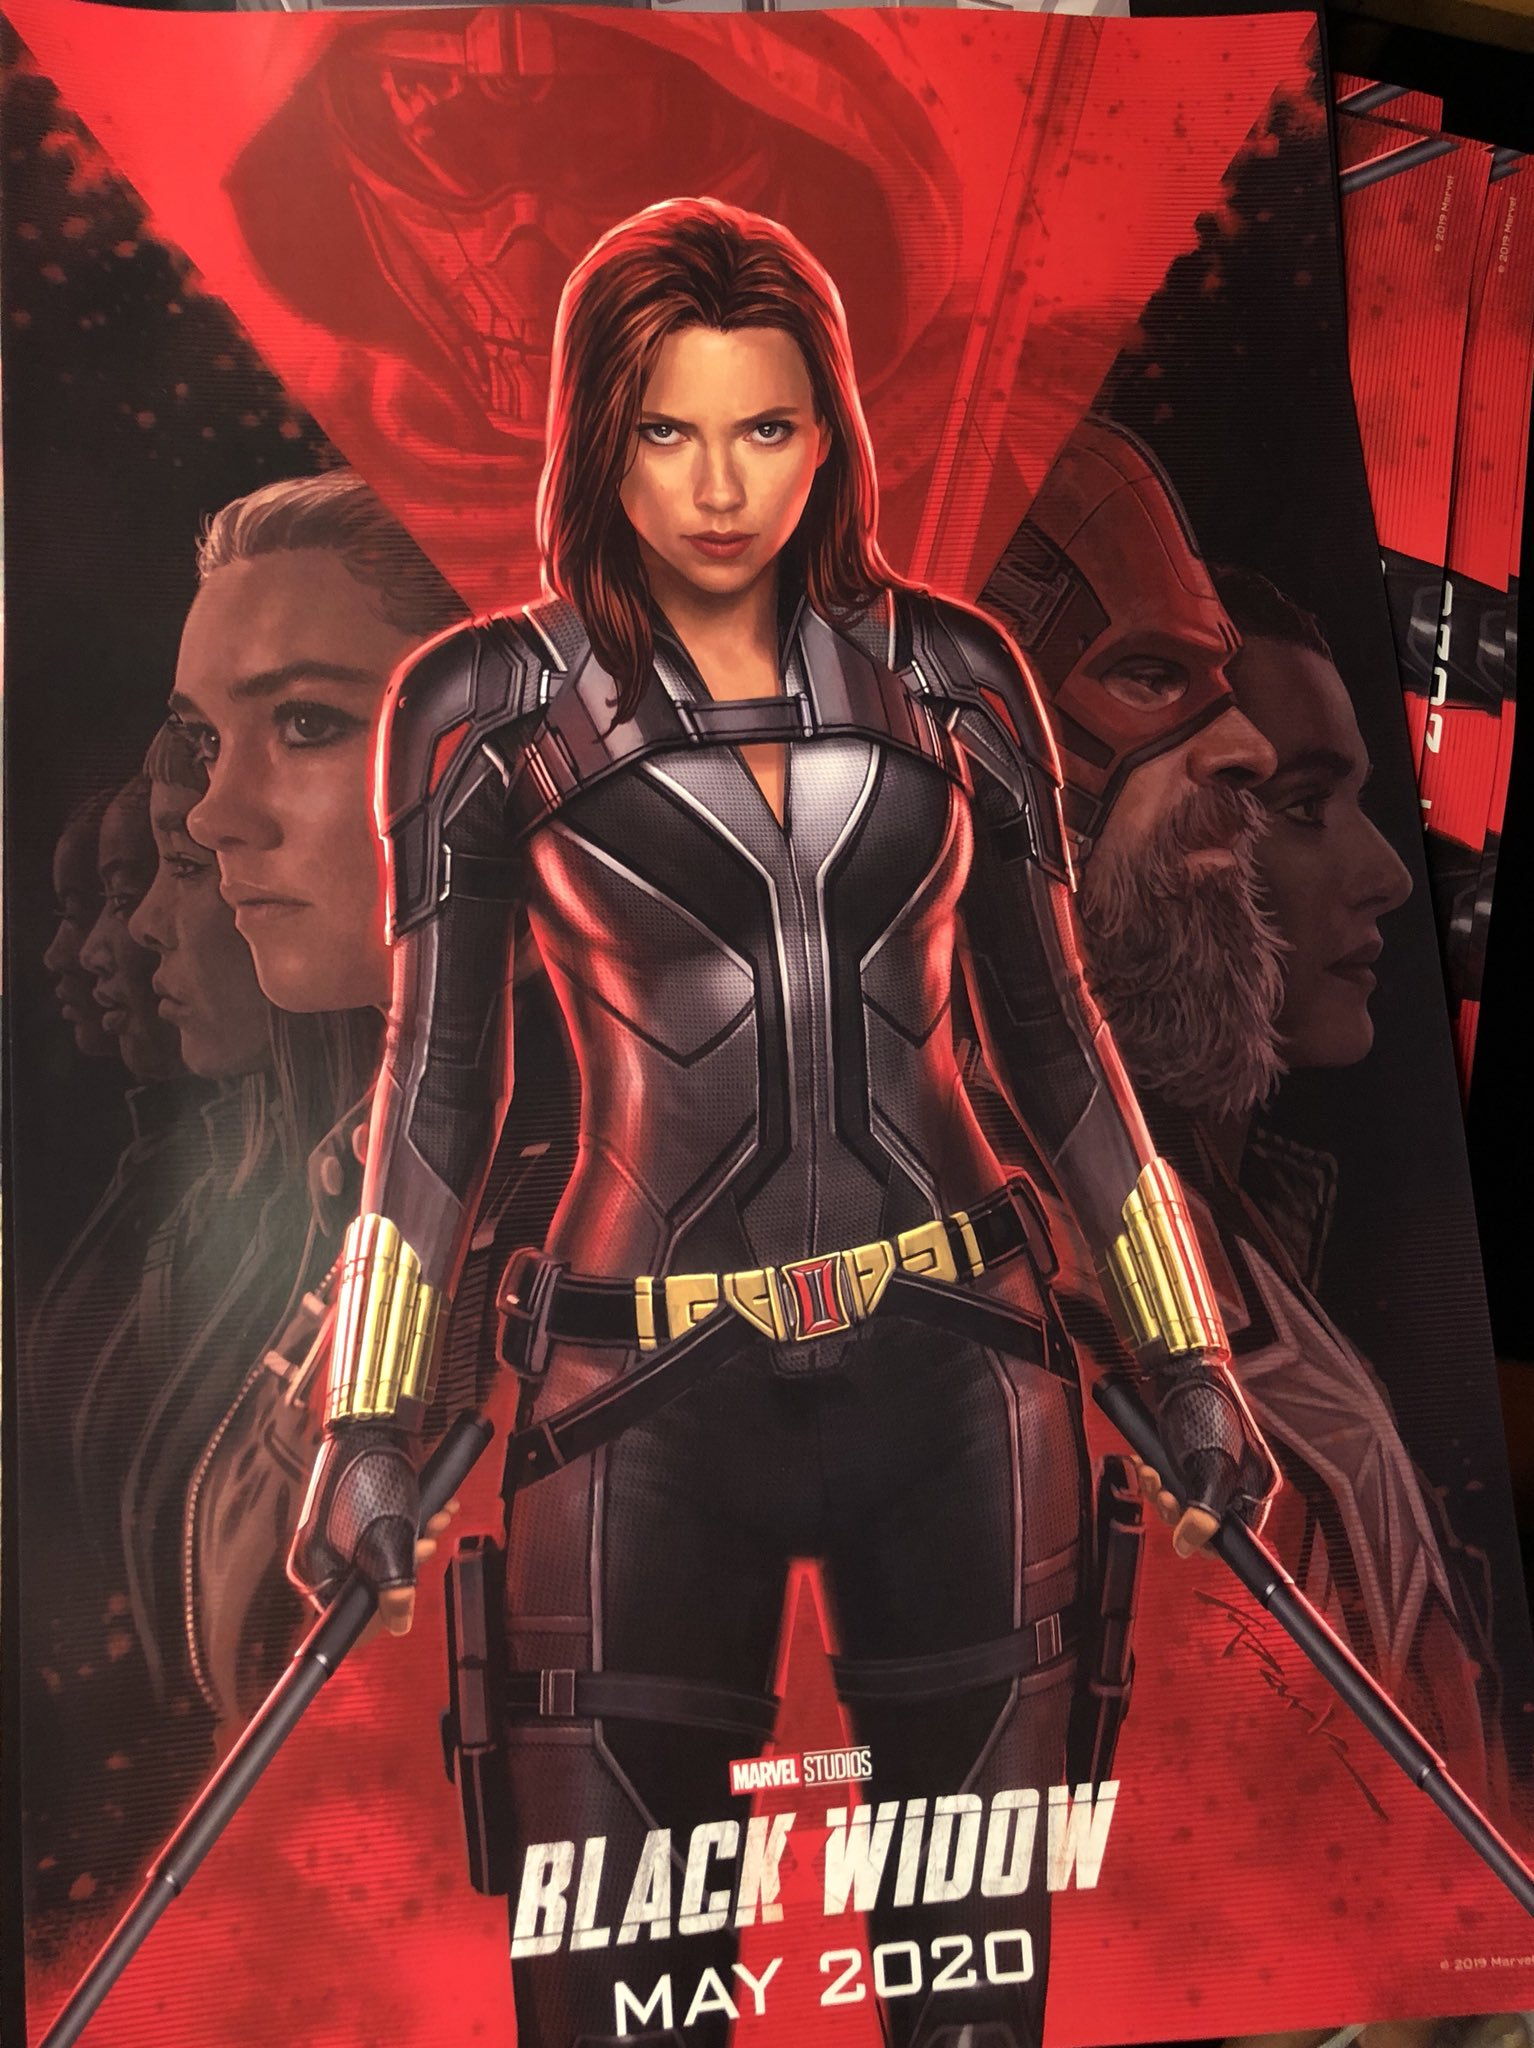 blackwidow poster